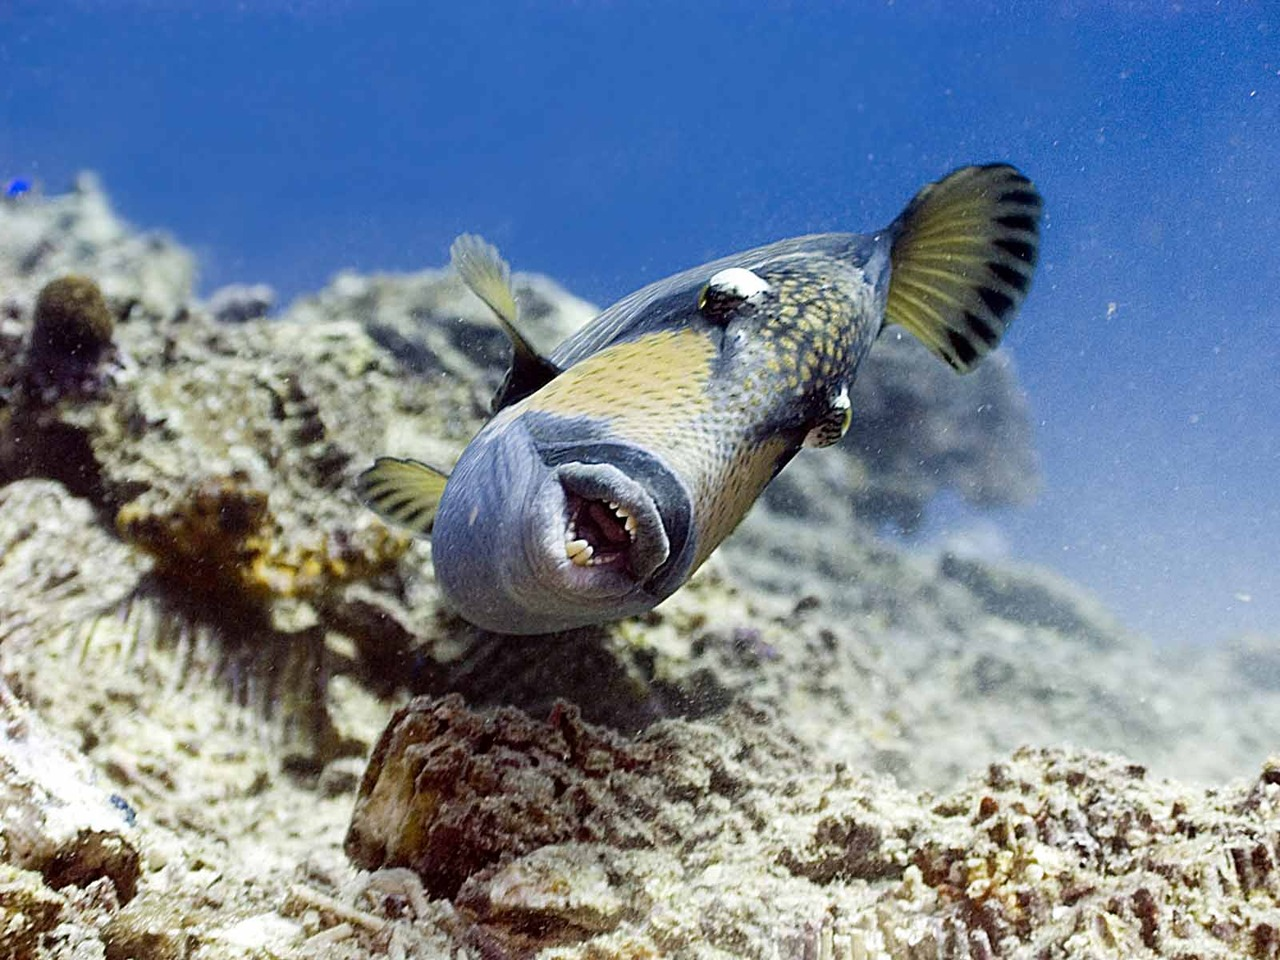 Mustache triggerfish in the rocks wallpaper